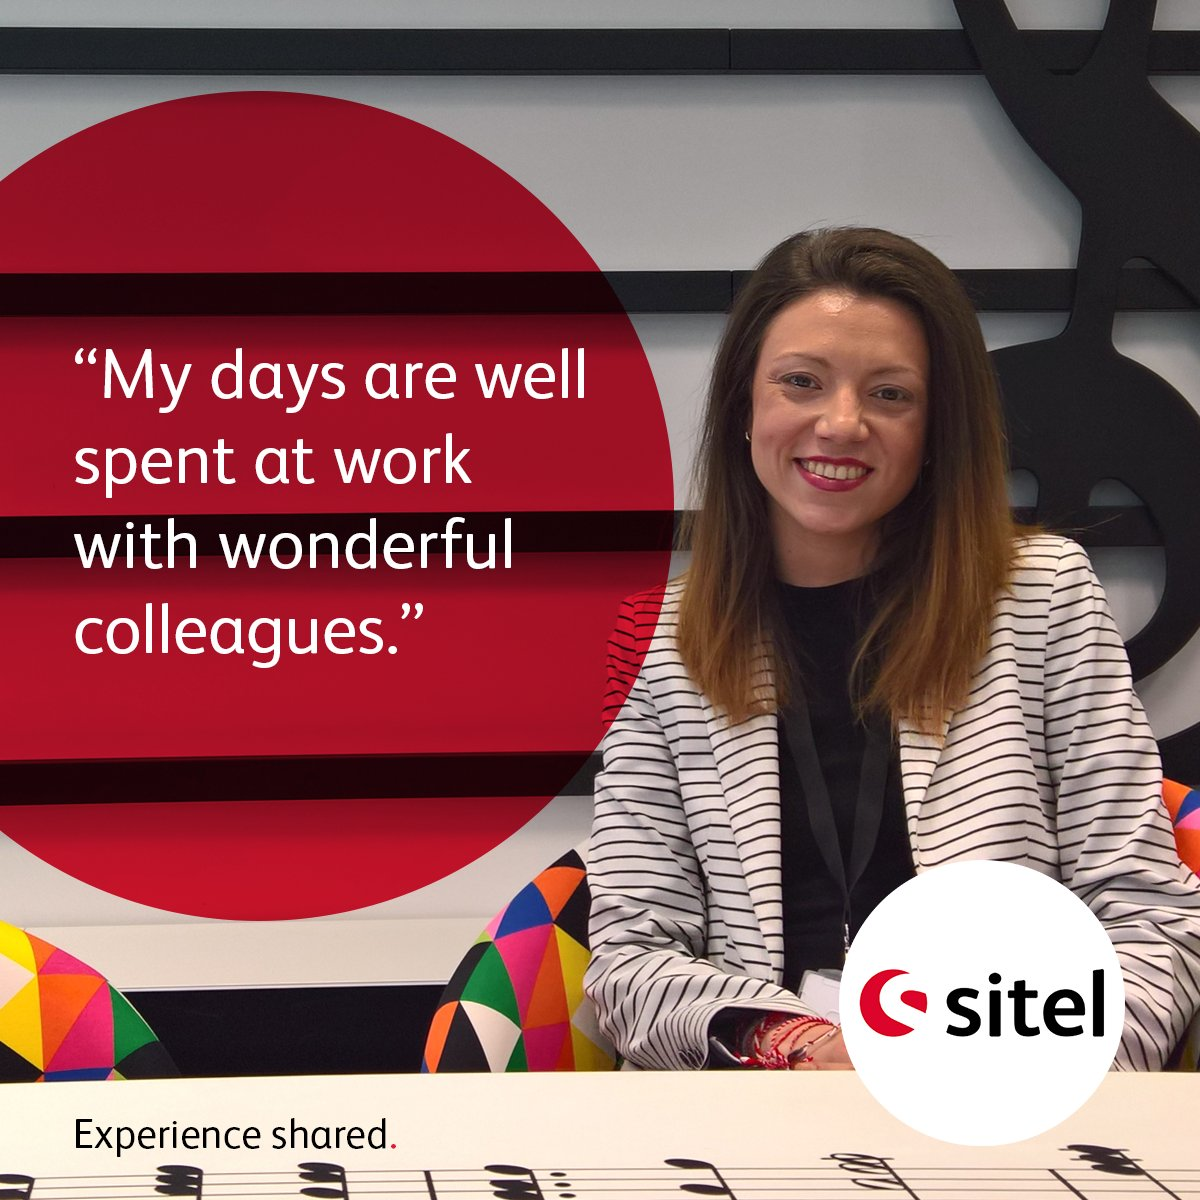 Meet Radina from HR and why she loves to work at Sitel! :)  #whysitel #peoplefirst #buildingtrust #HRteam<br>http://pic.twitter.com/9qvDheI3Hq